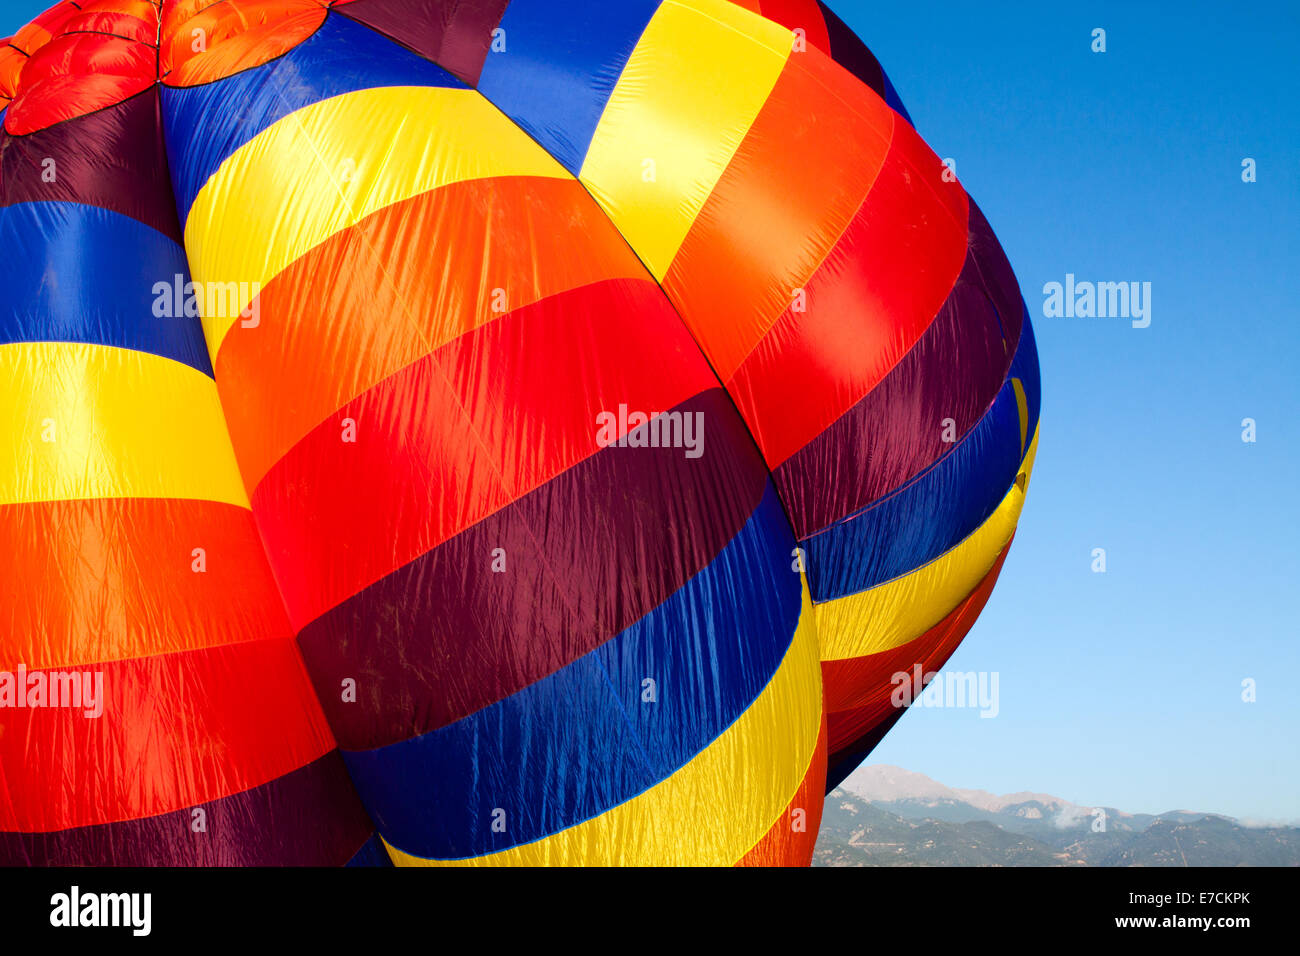 A colorful hot-air balloon being inflated with Pikes Peak in the distance Stock Photo